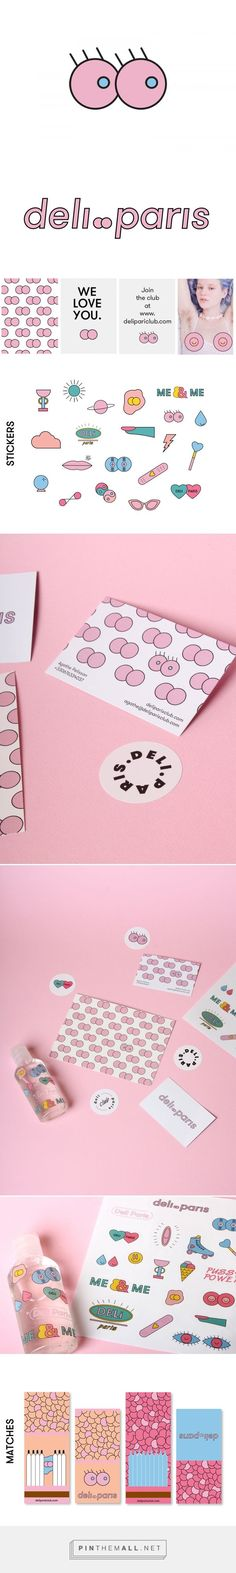 Deli Paris Club Branding - I love how quirky and tongue in cheek this is.